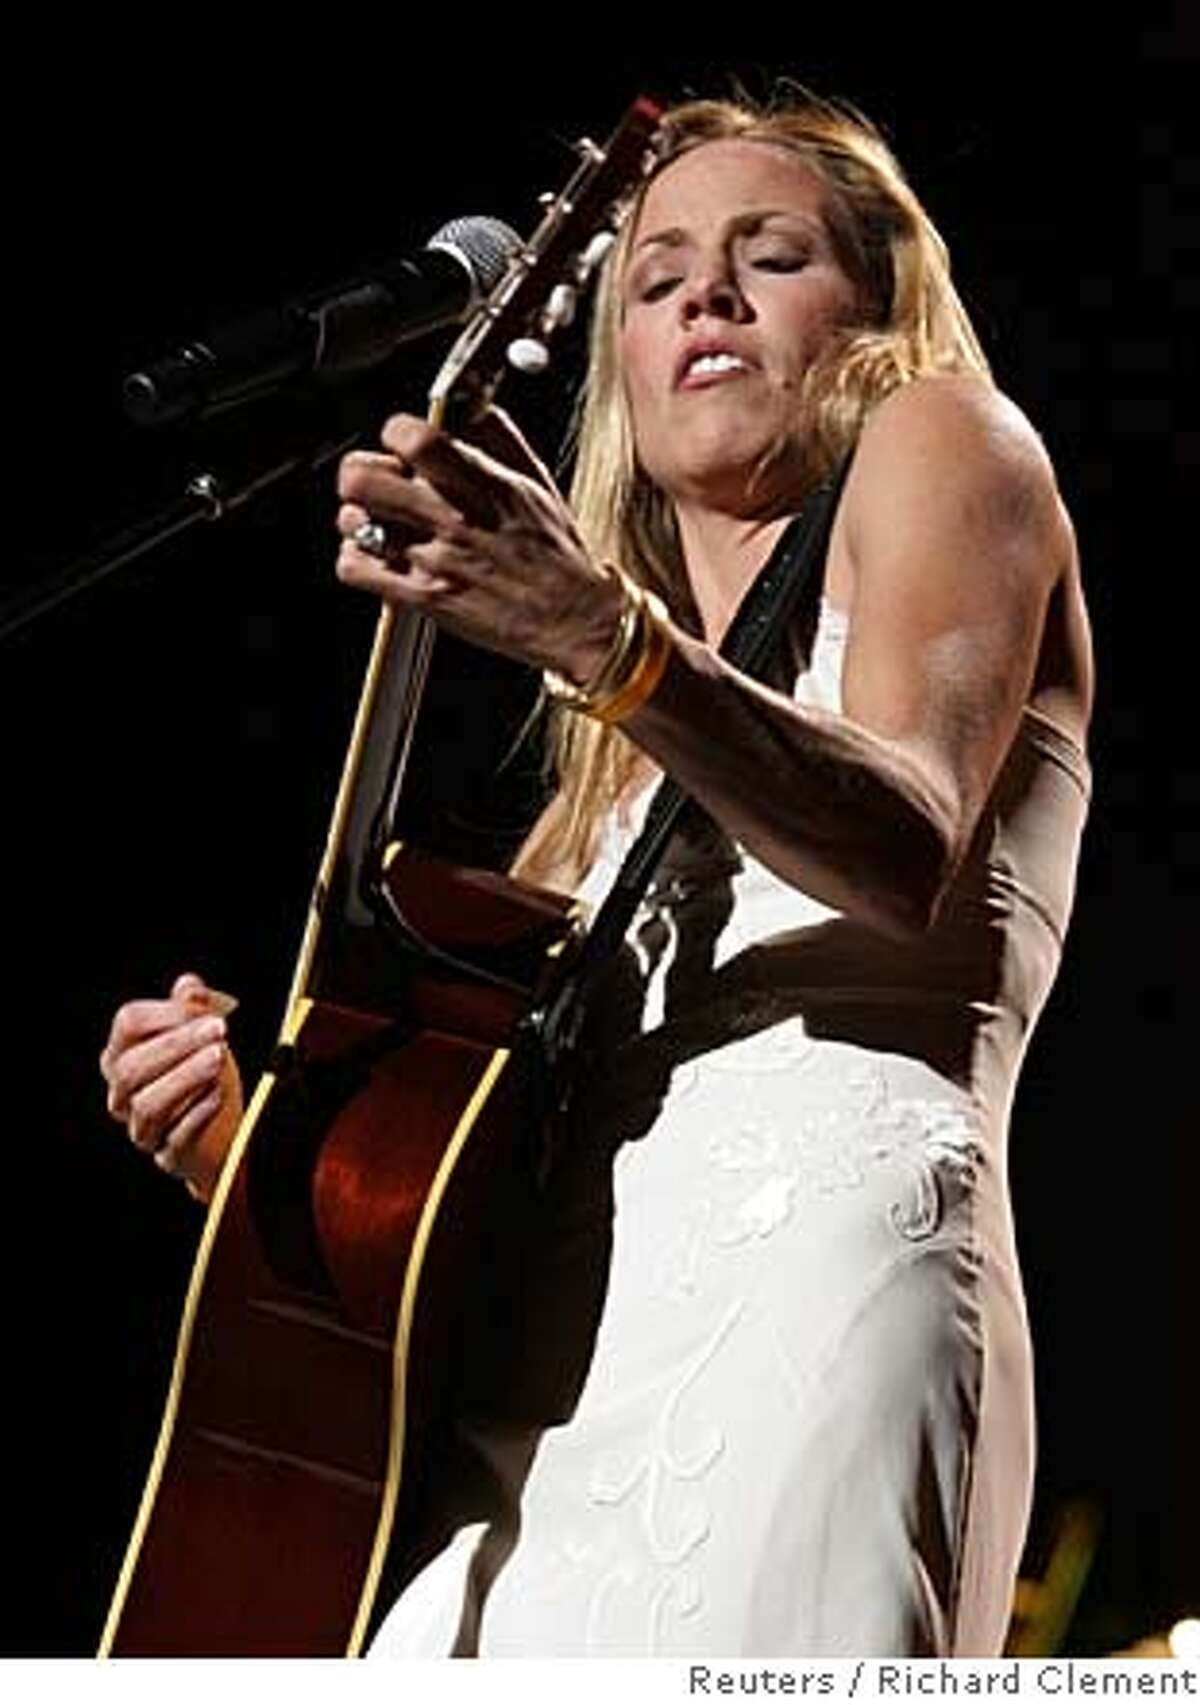 Sheryl Crow performs on the opening night of her Wildflower Tour in Seattle October 16, 2005. The tour highlights her fifth studio album